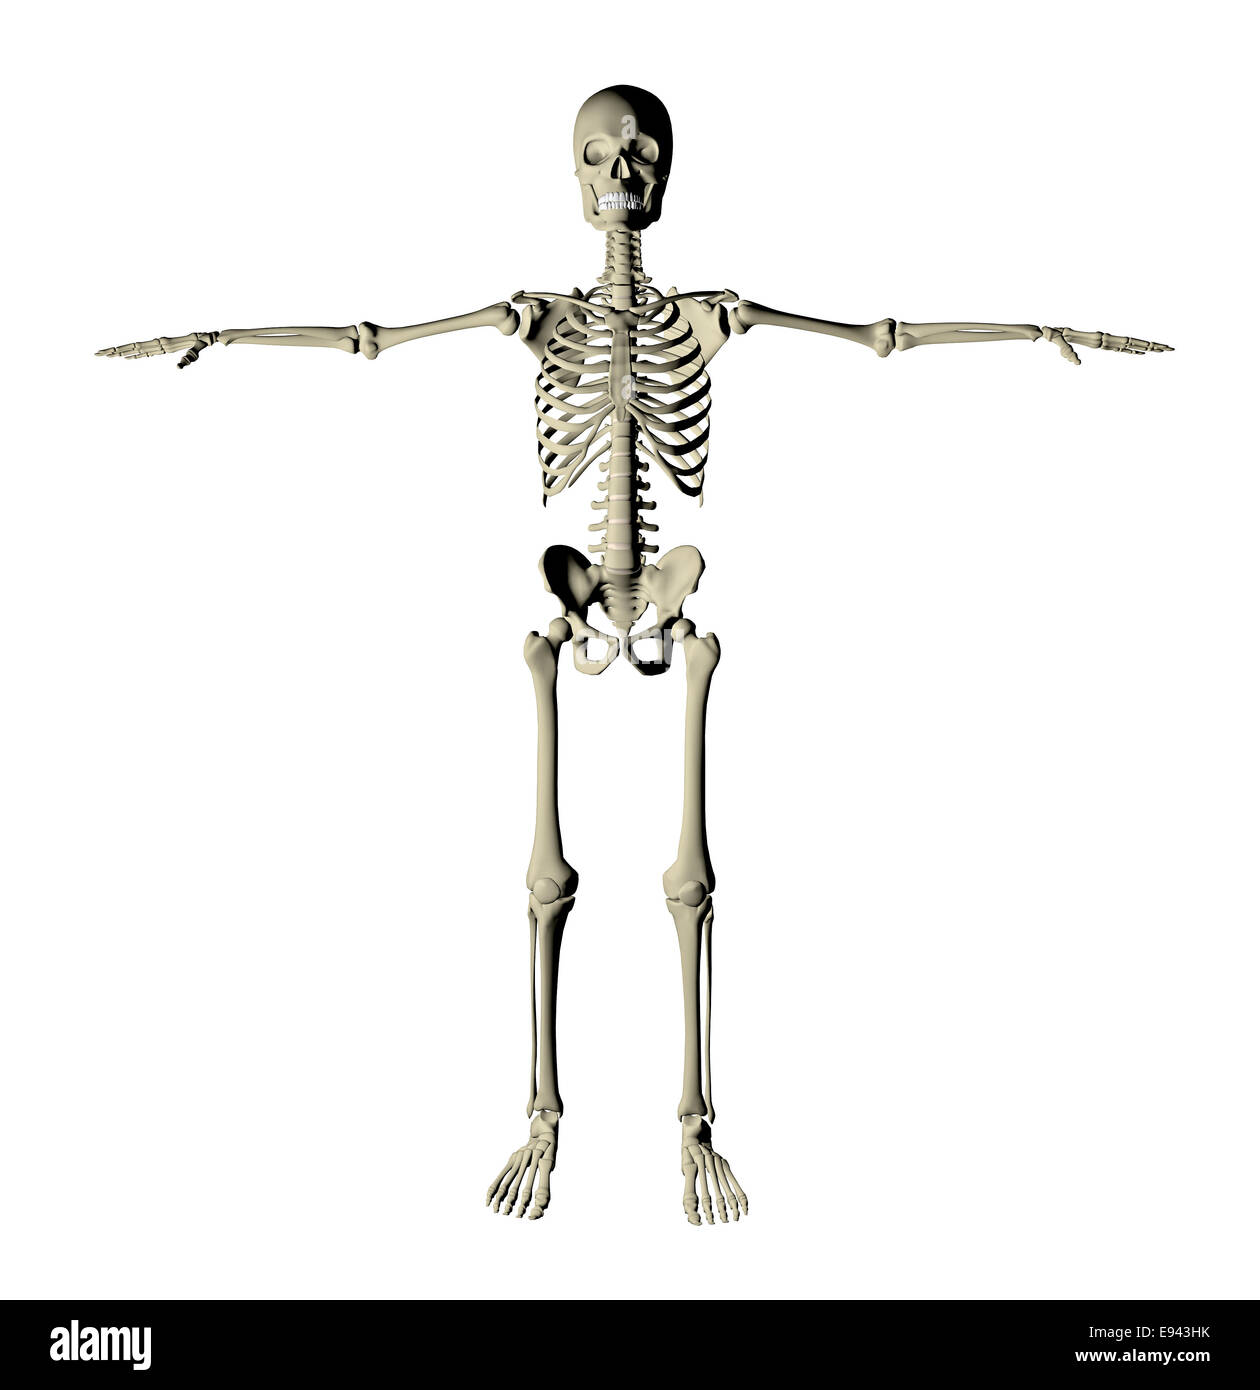 Skeleton and bones of a human body on a white background stock skeleton and bones of a human body on a white background ccuart Image collections